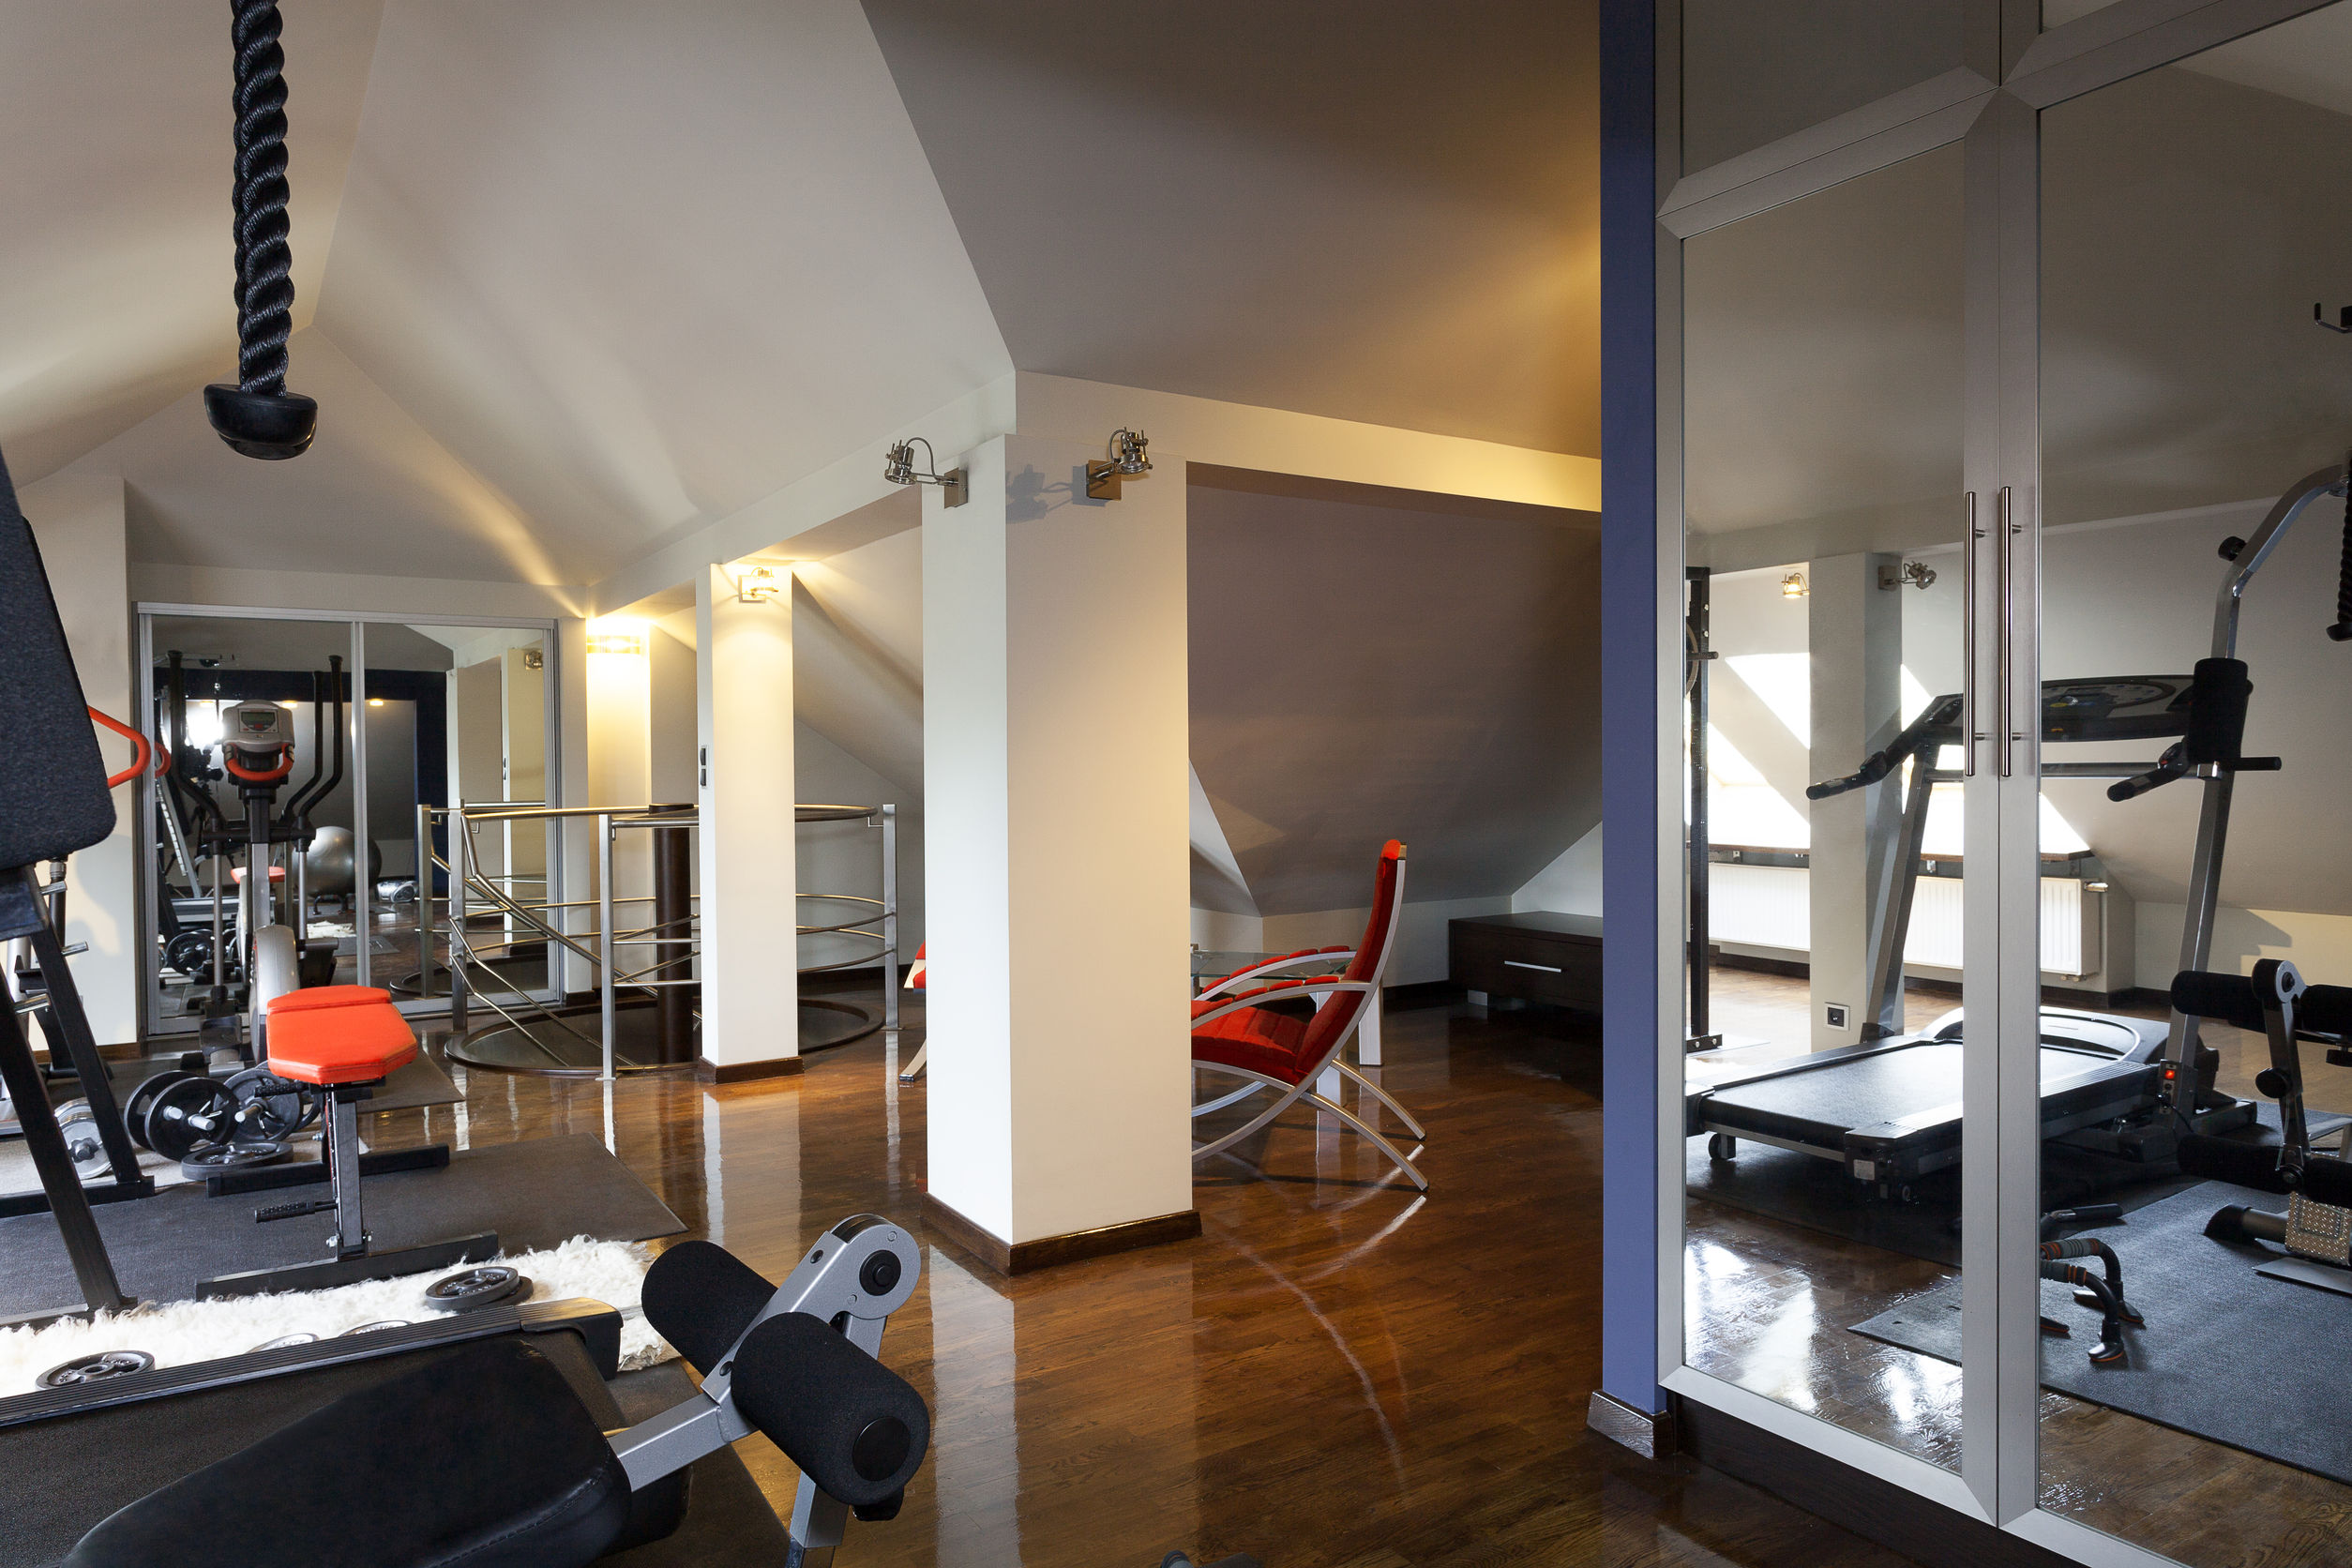 Best Apartments With Fitness Center Amenities in The Woodlands